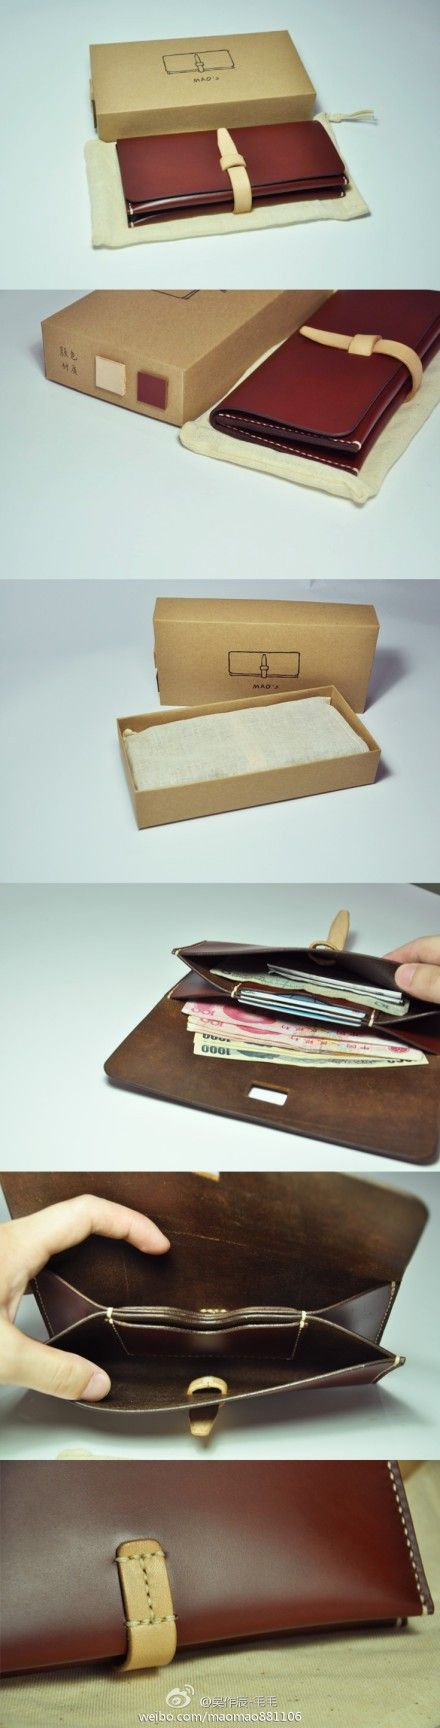 carteira (wallet/clutch) - very clever card holder in the middle!